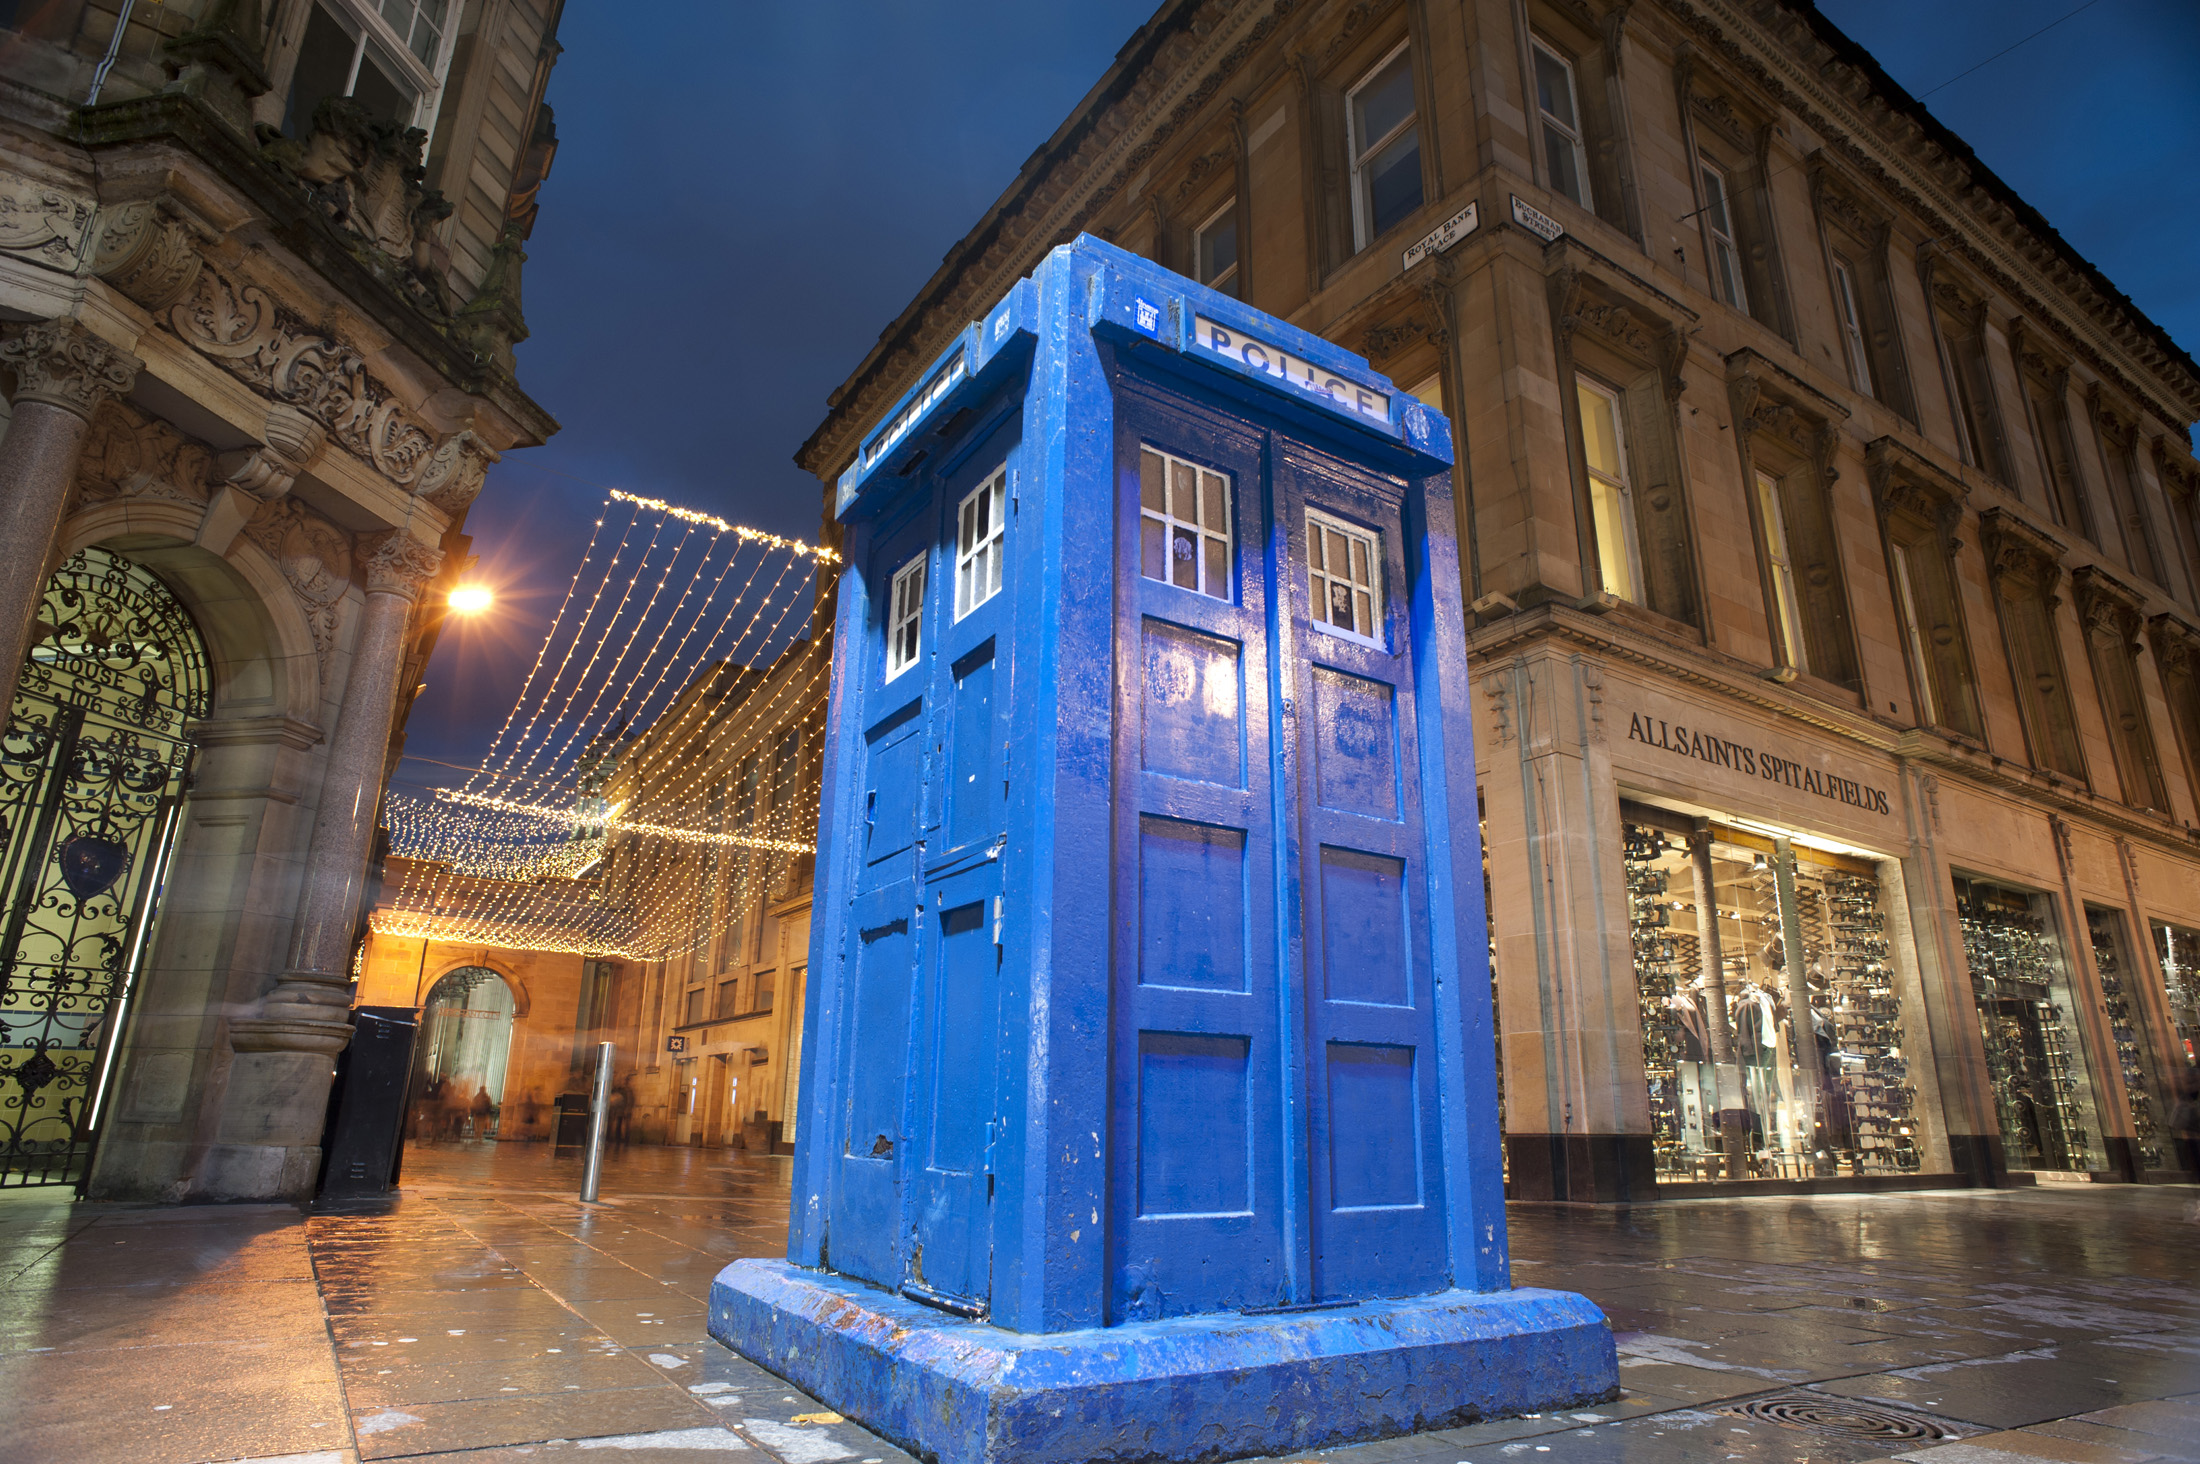 buchanan street police box, one of few remaining historic spolice call boxes in the UK